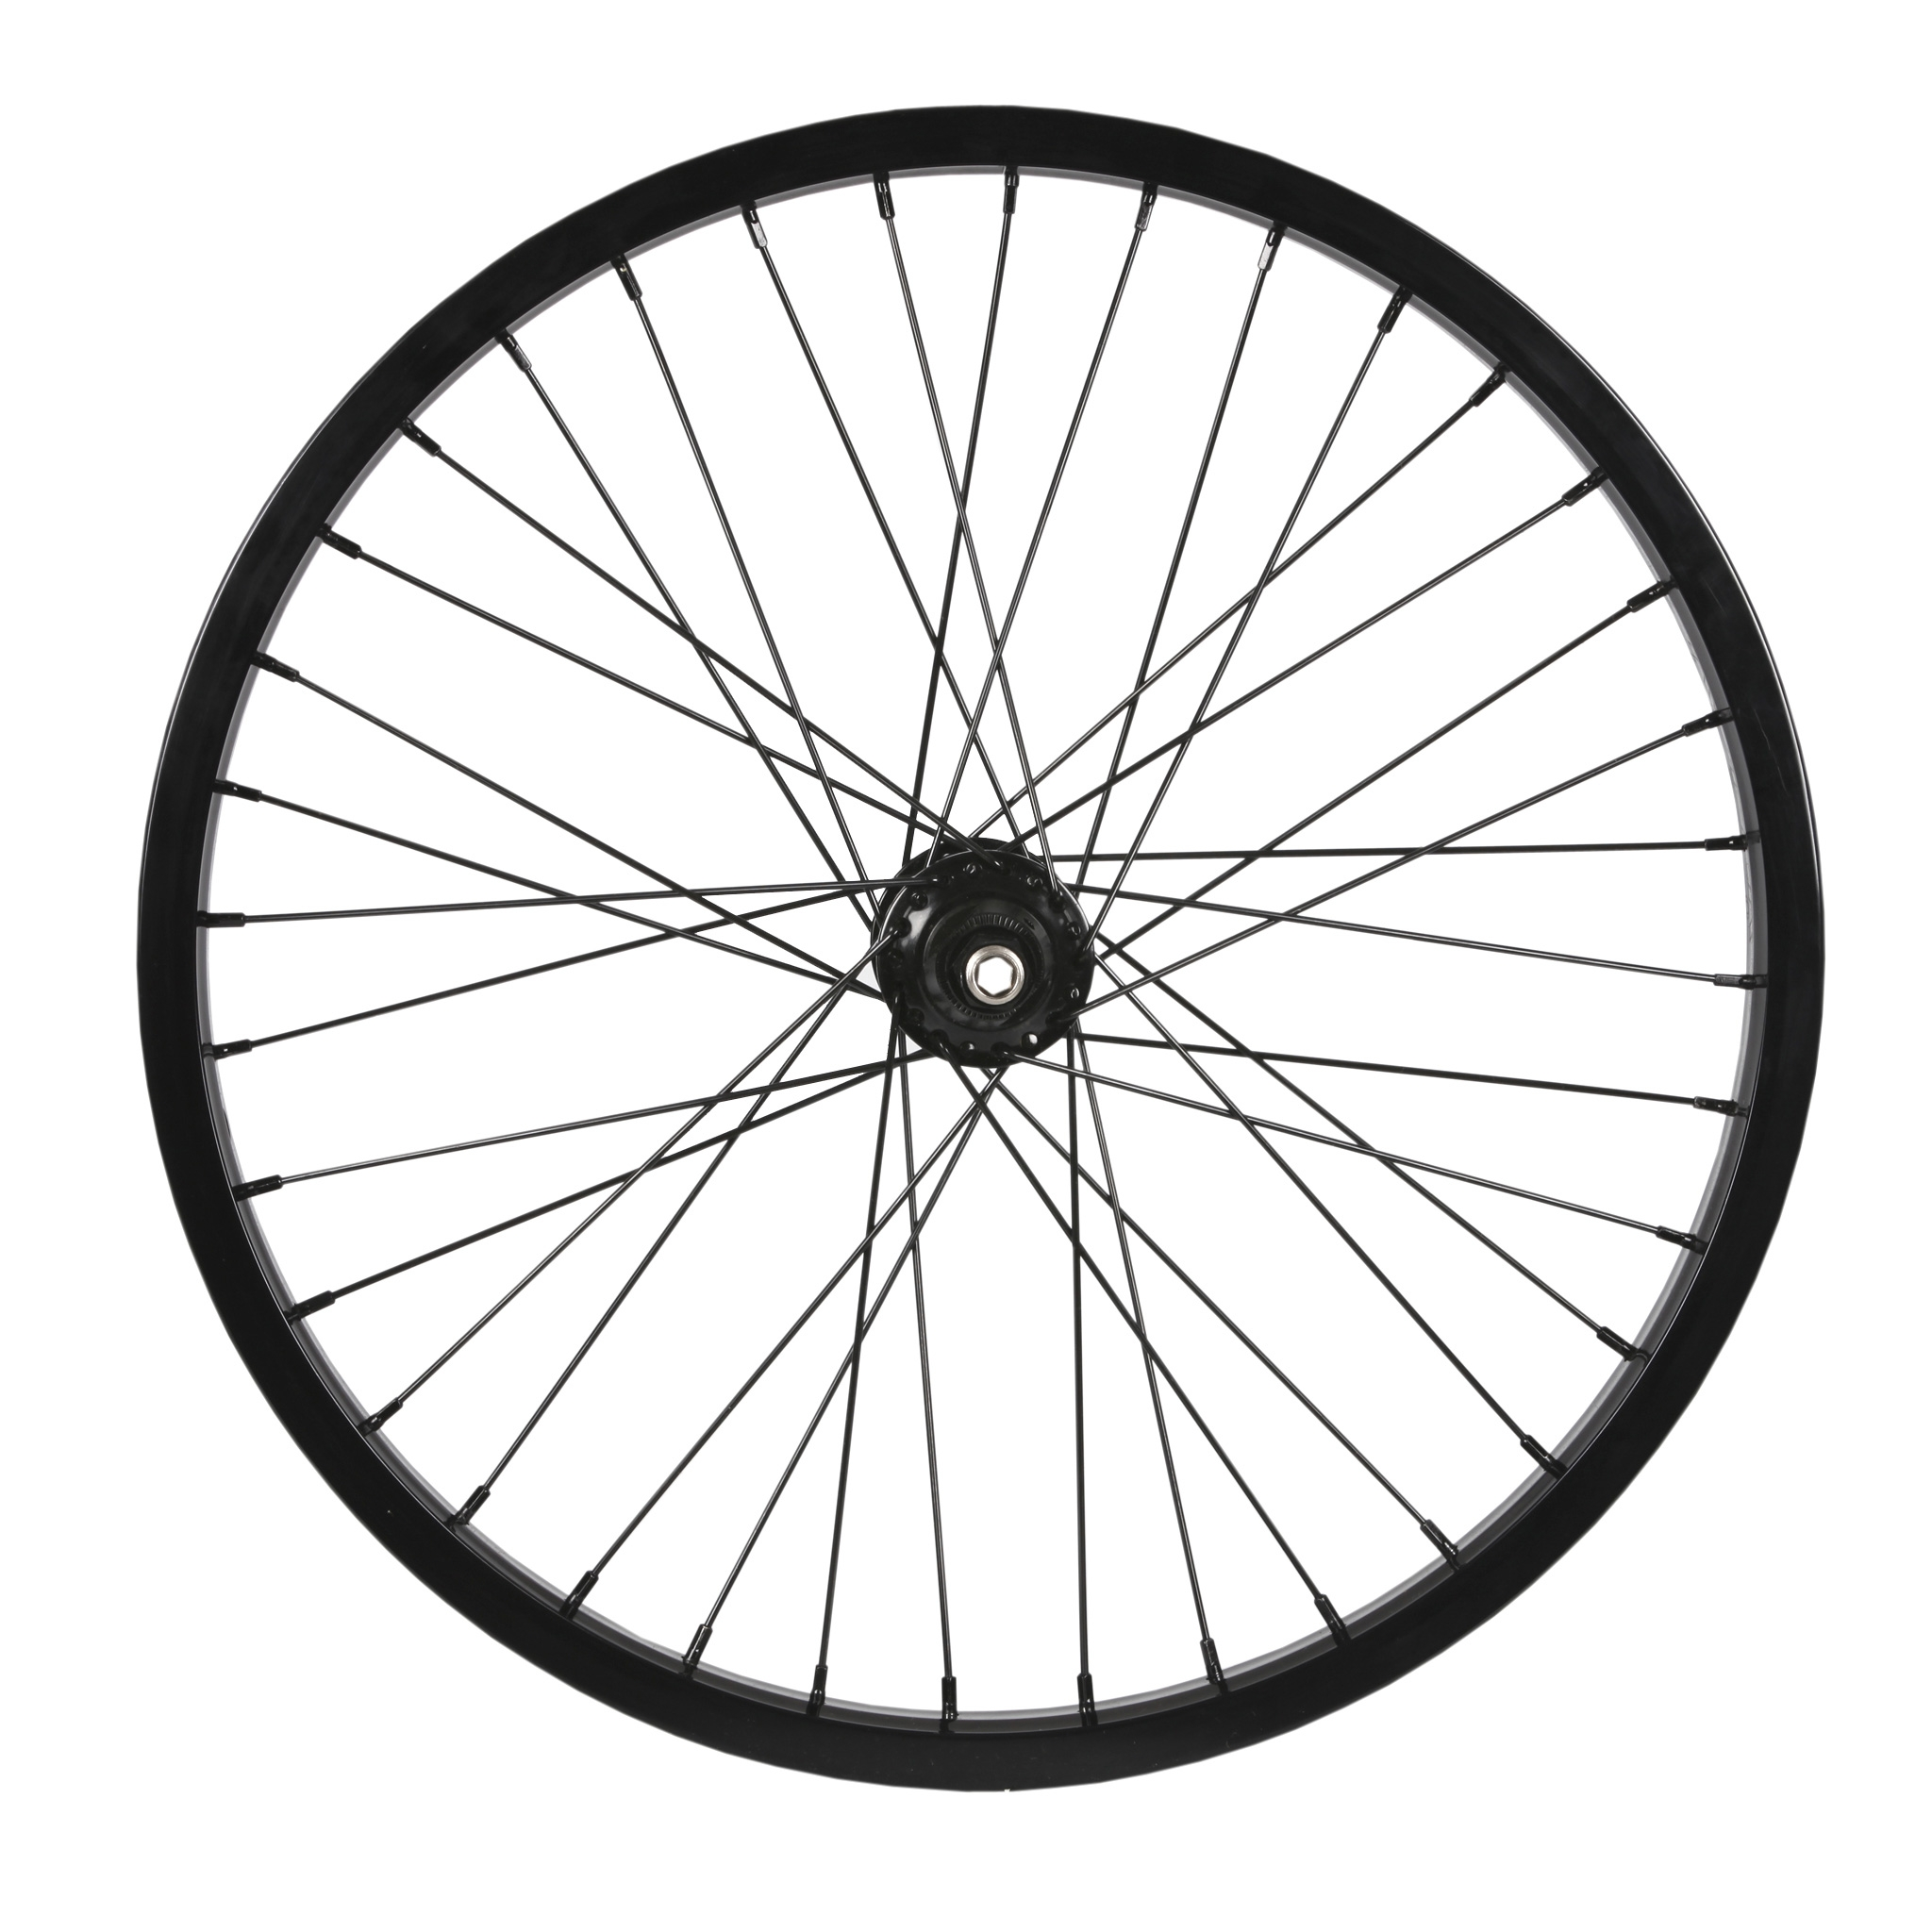 Clipart bicycle wheel.